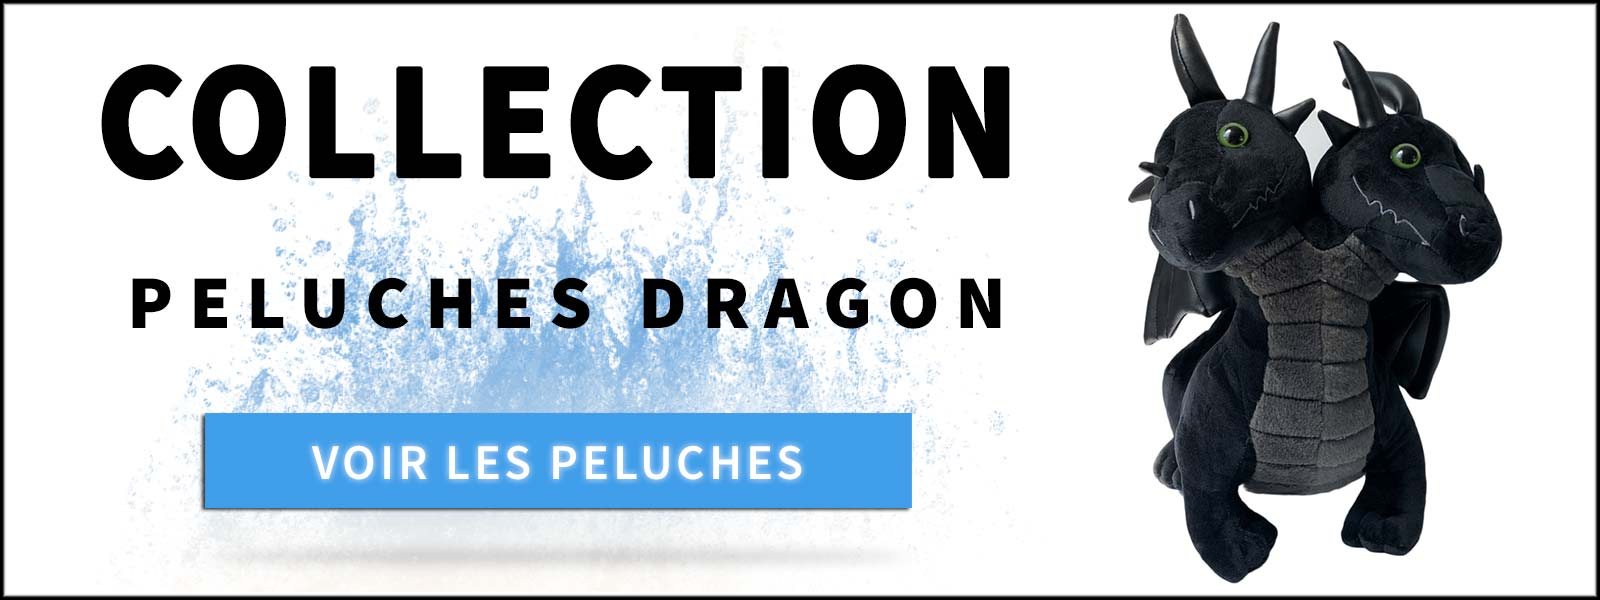 Collection peluches dragon